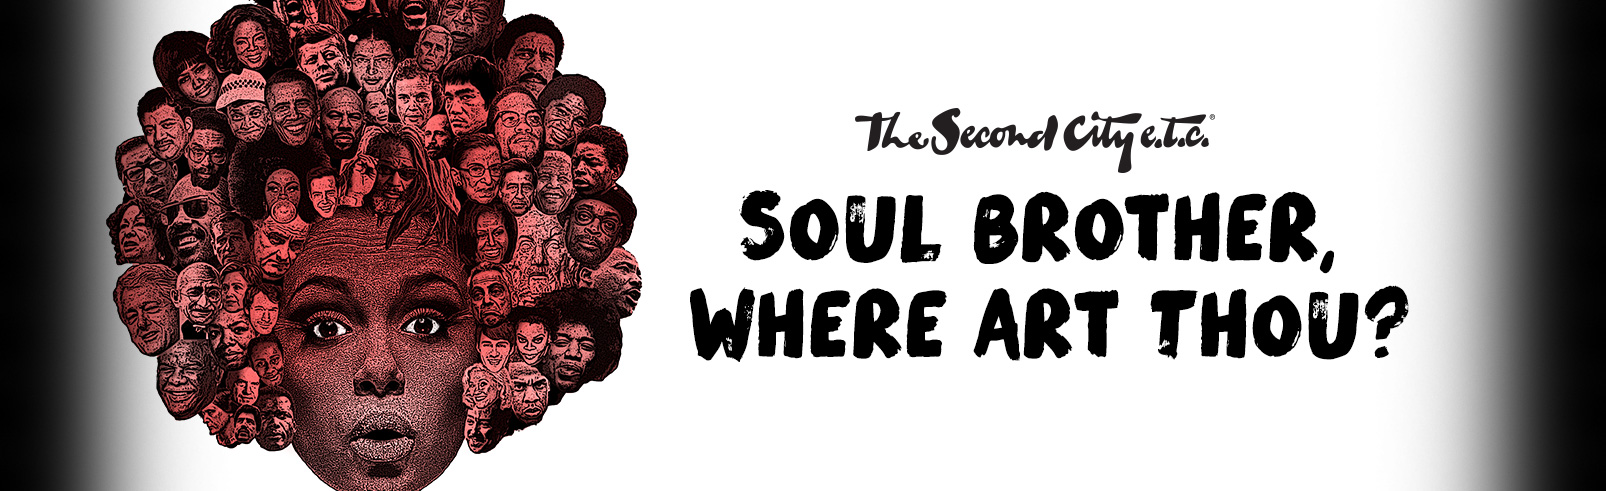 Soul Brother, Where Art Thou? @ Second City E.T.C